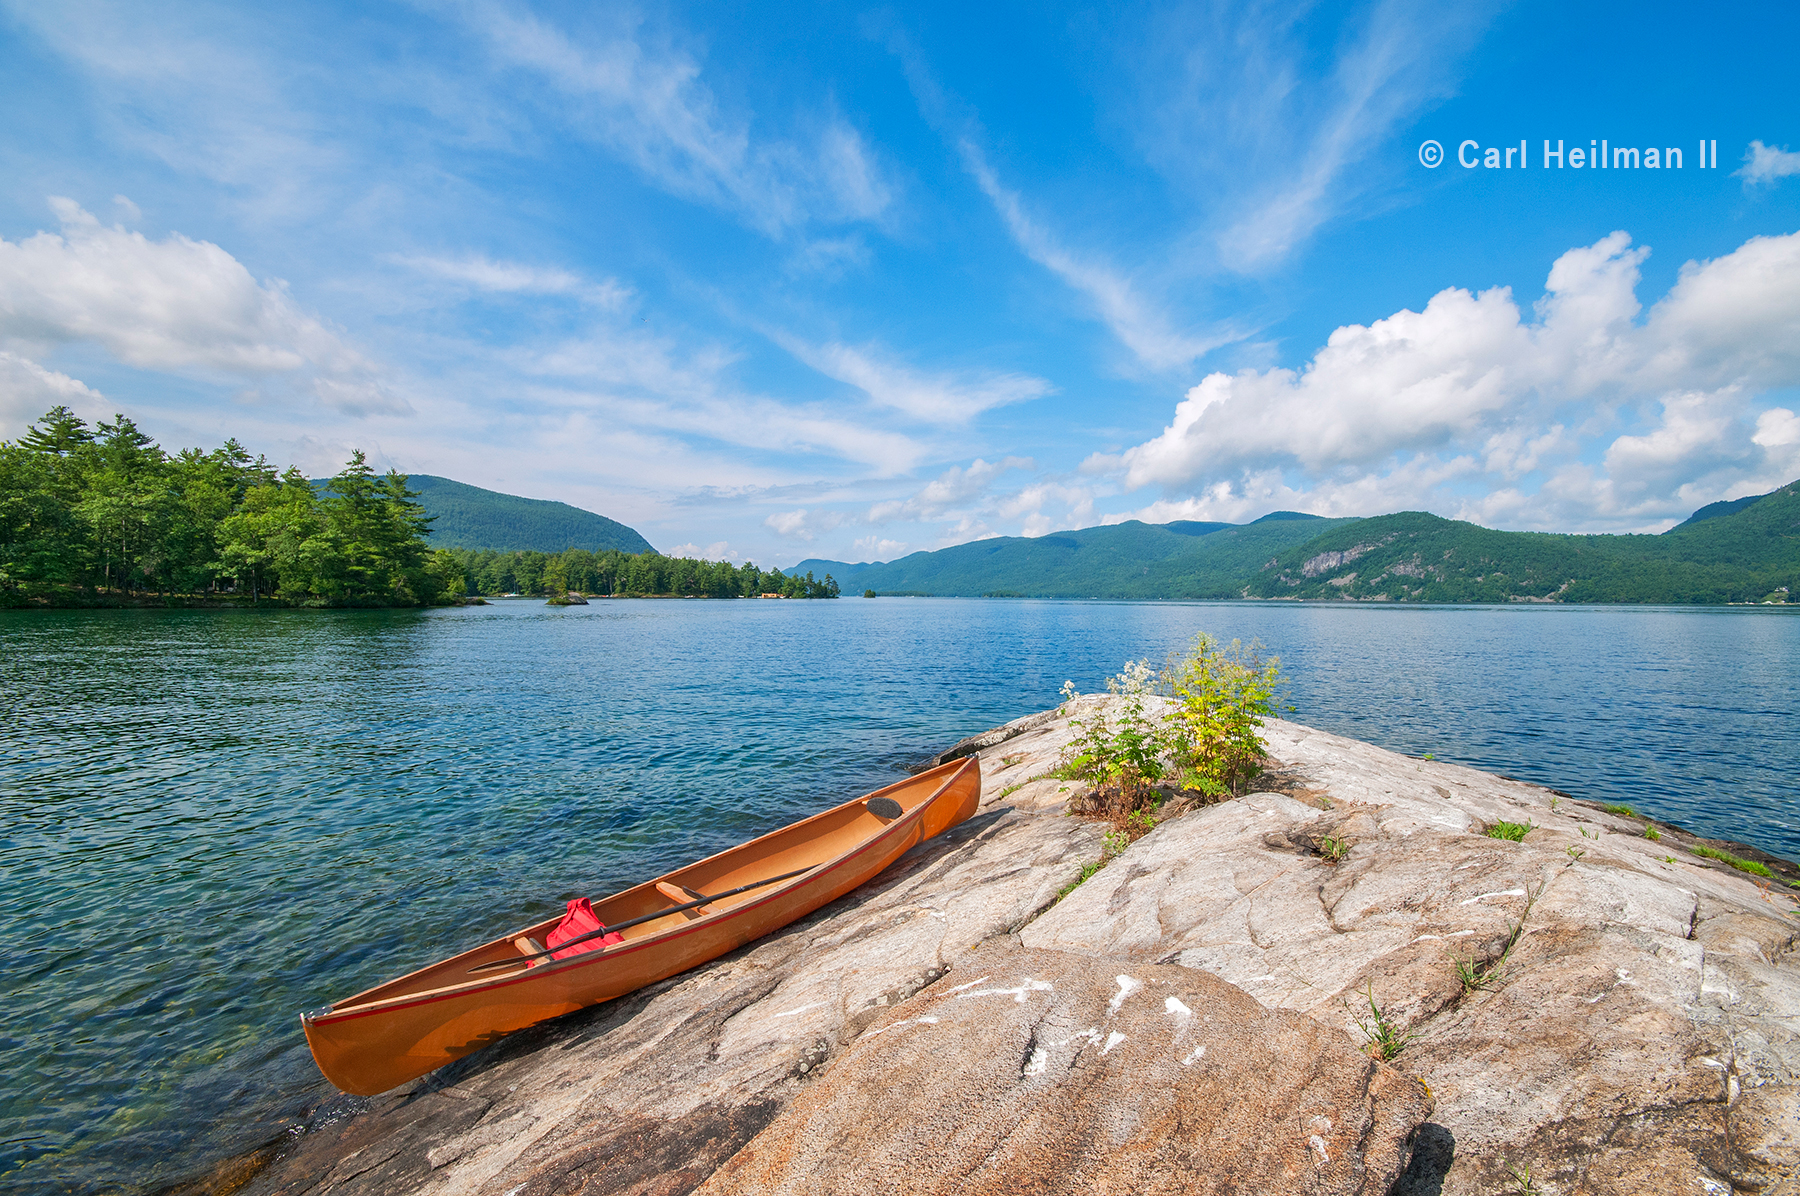 Time Magazine S 20 Best Places To Go In 2018 Article Has Chosen The Lake George Area As Number 8 Place